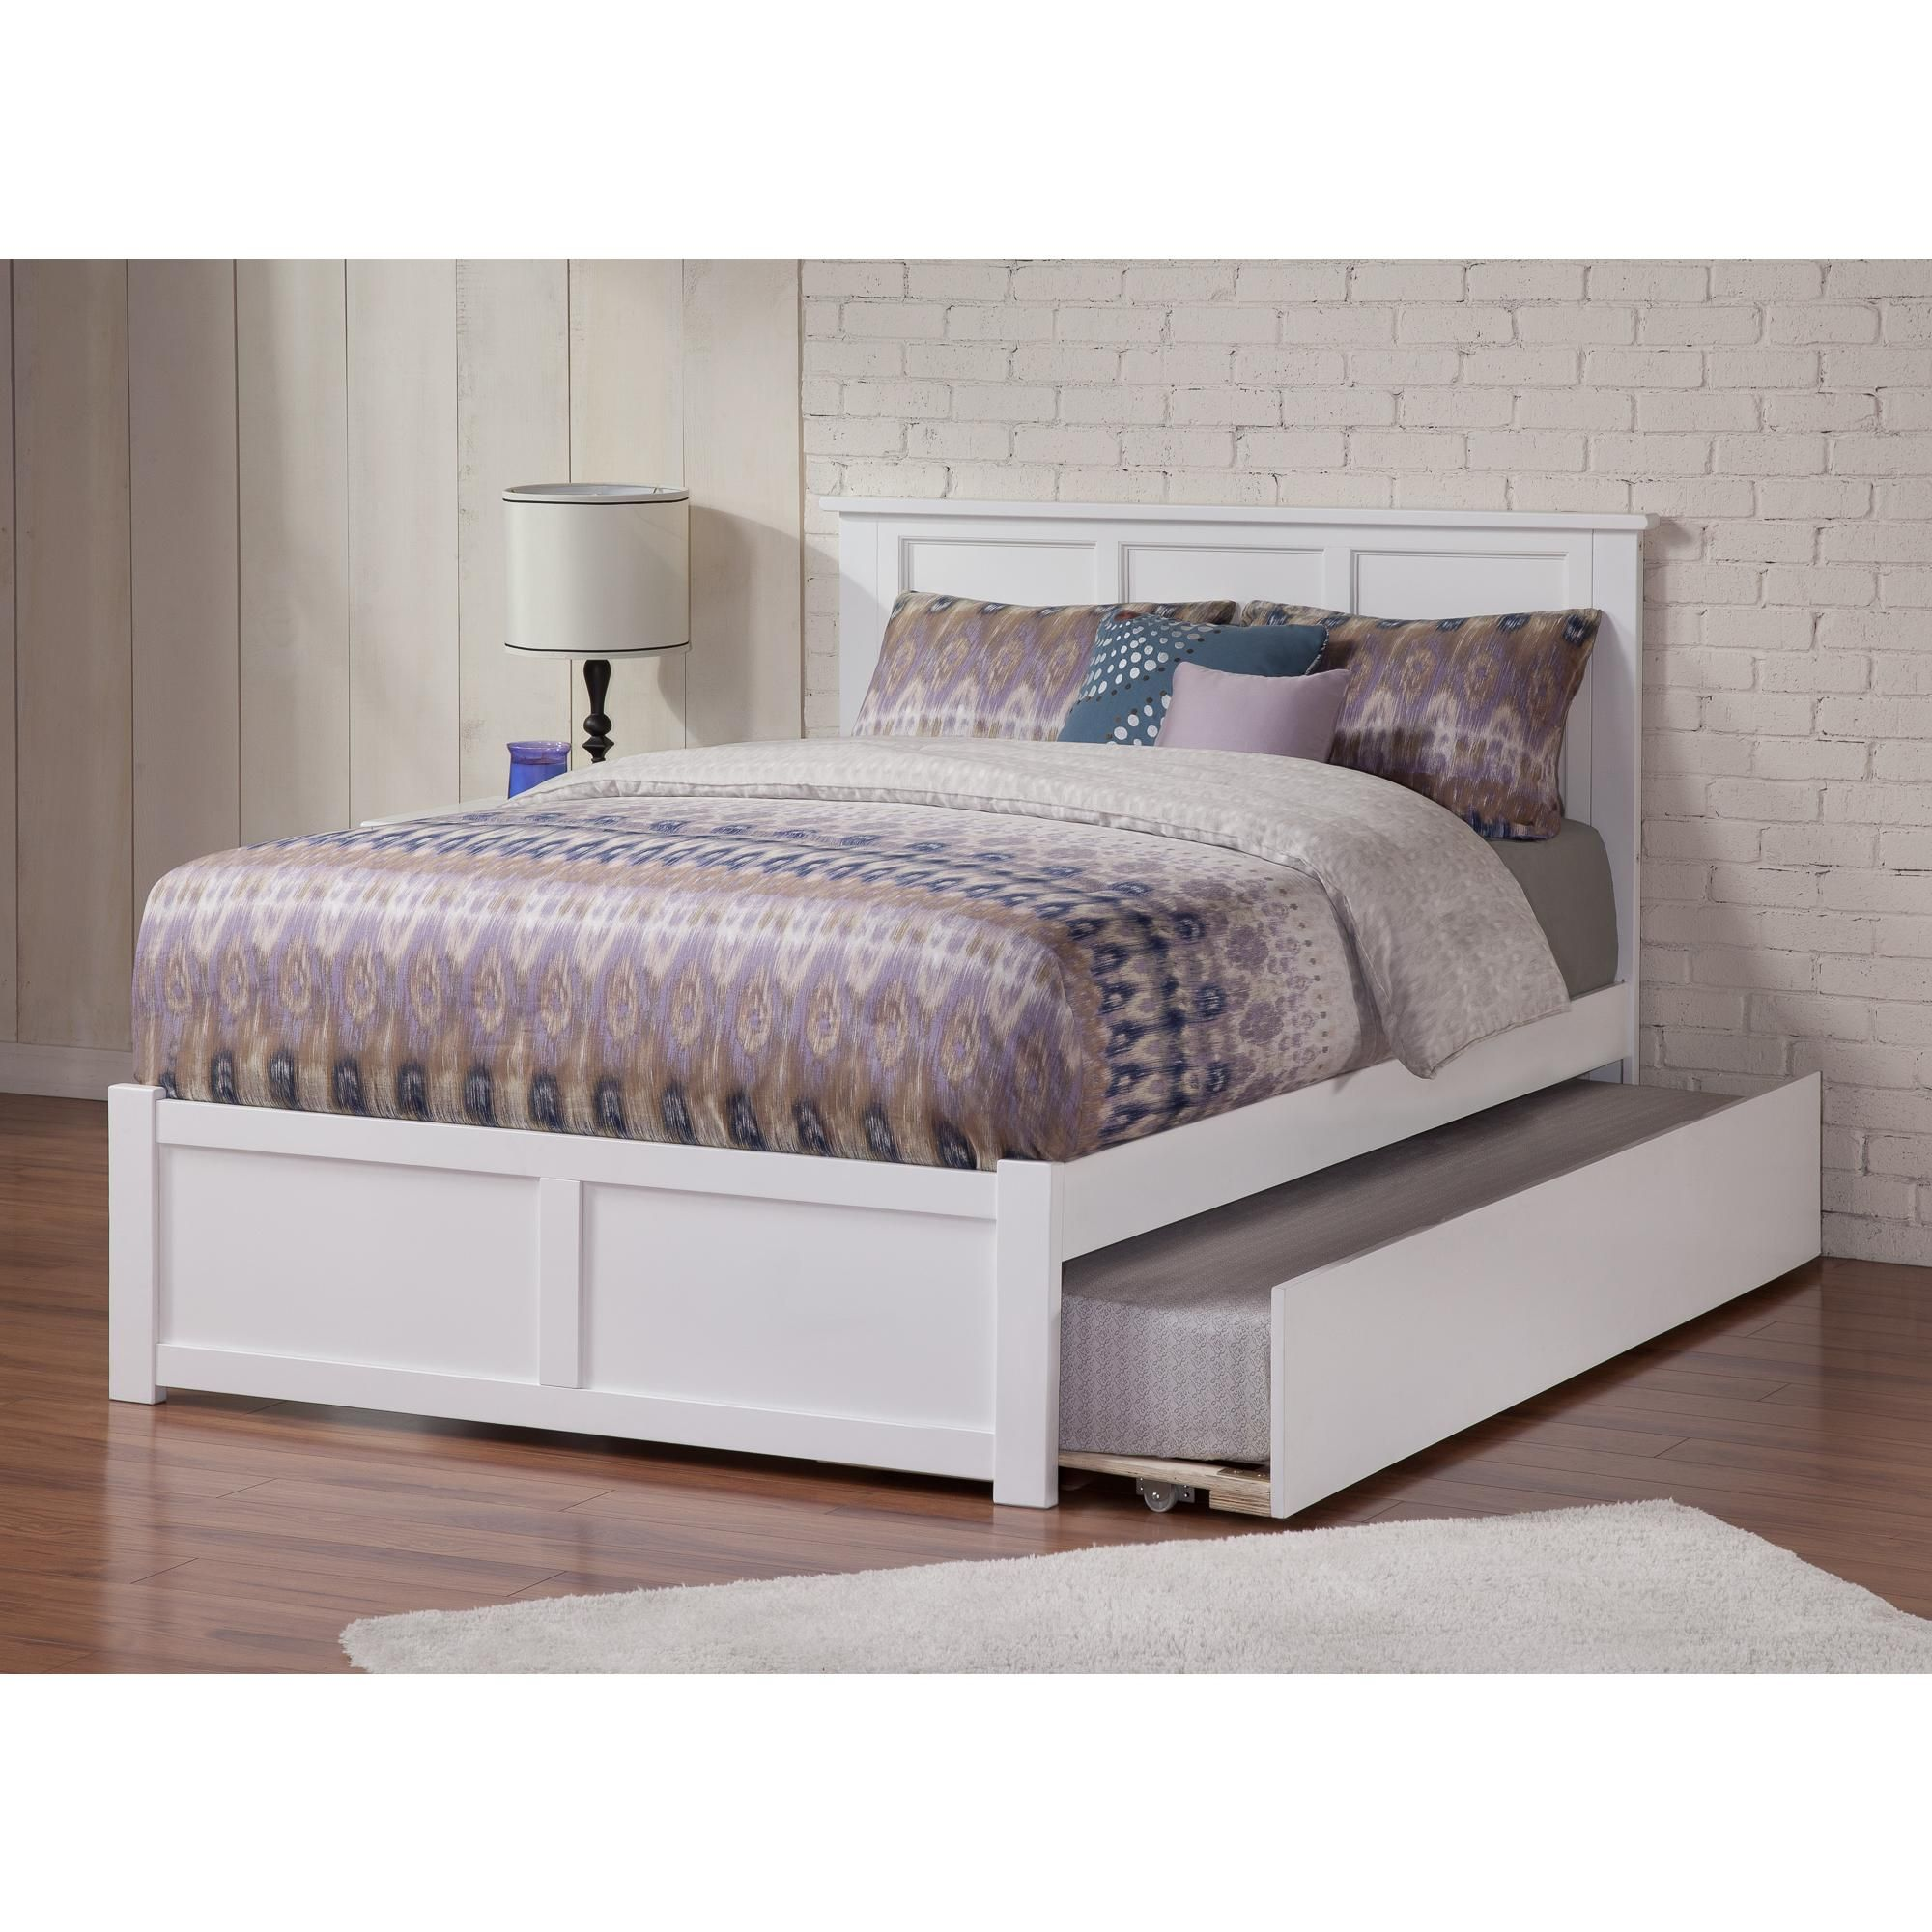 Madison Platform Bed With Flat Panel Foot Board And Twin Size Urban Trundle Bed In Multiple Colors And Sizes Walmart Com Trundle Bed Frame Bed With Drawers Trundle Bed